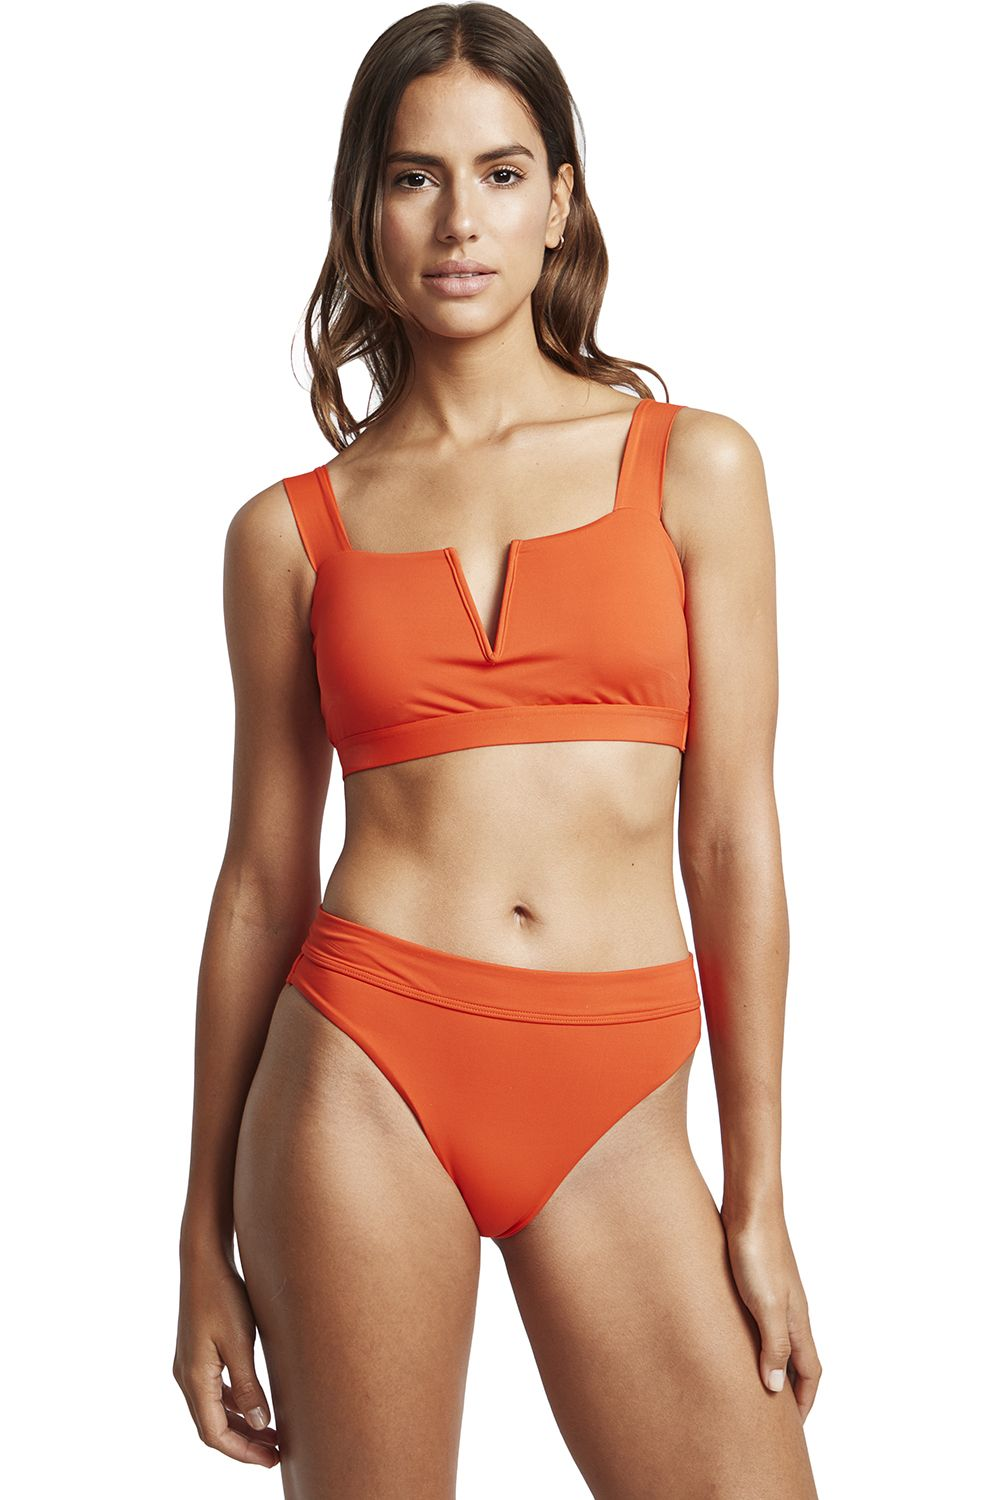 Billabong Bikini Bottom MAUI RIDER SOL SEARCHER Samba